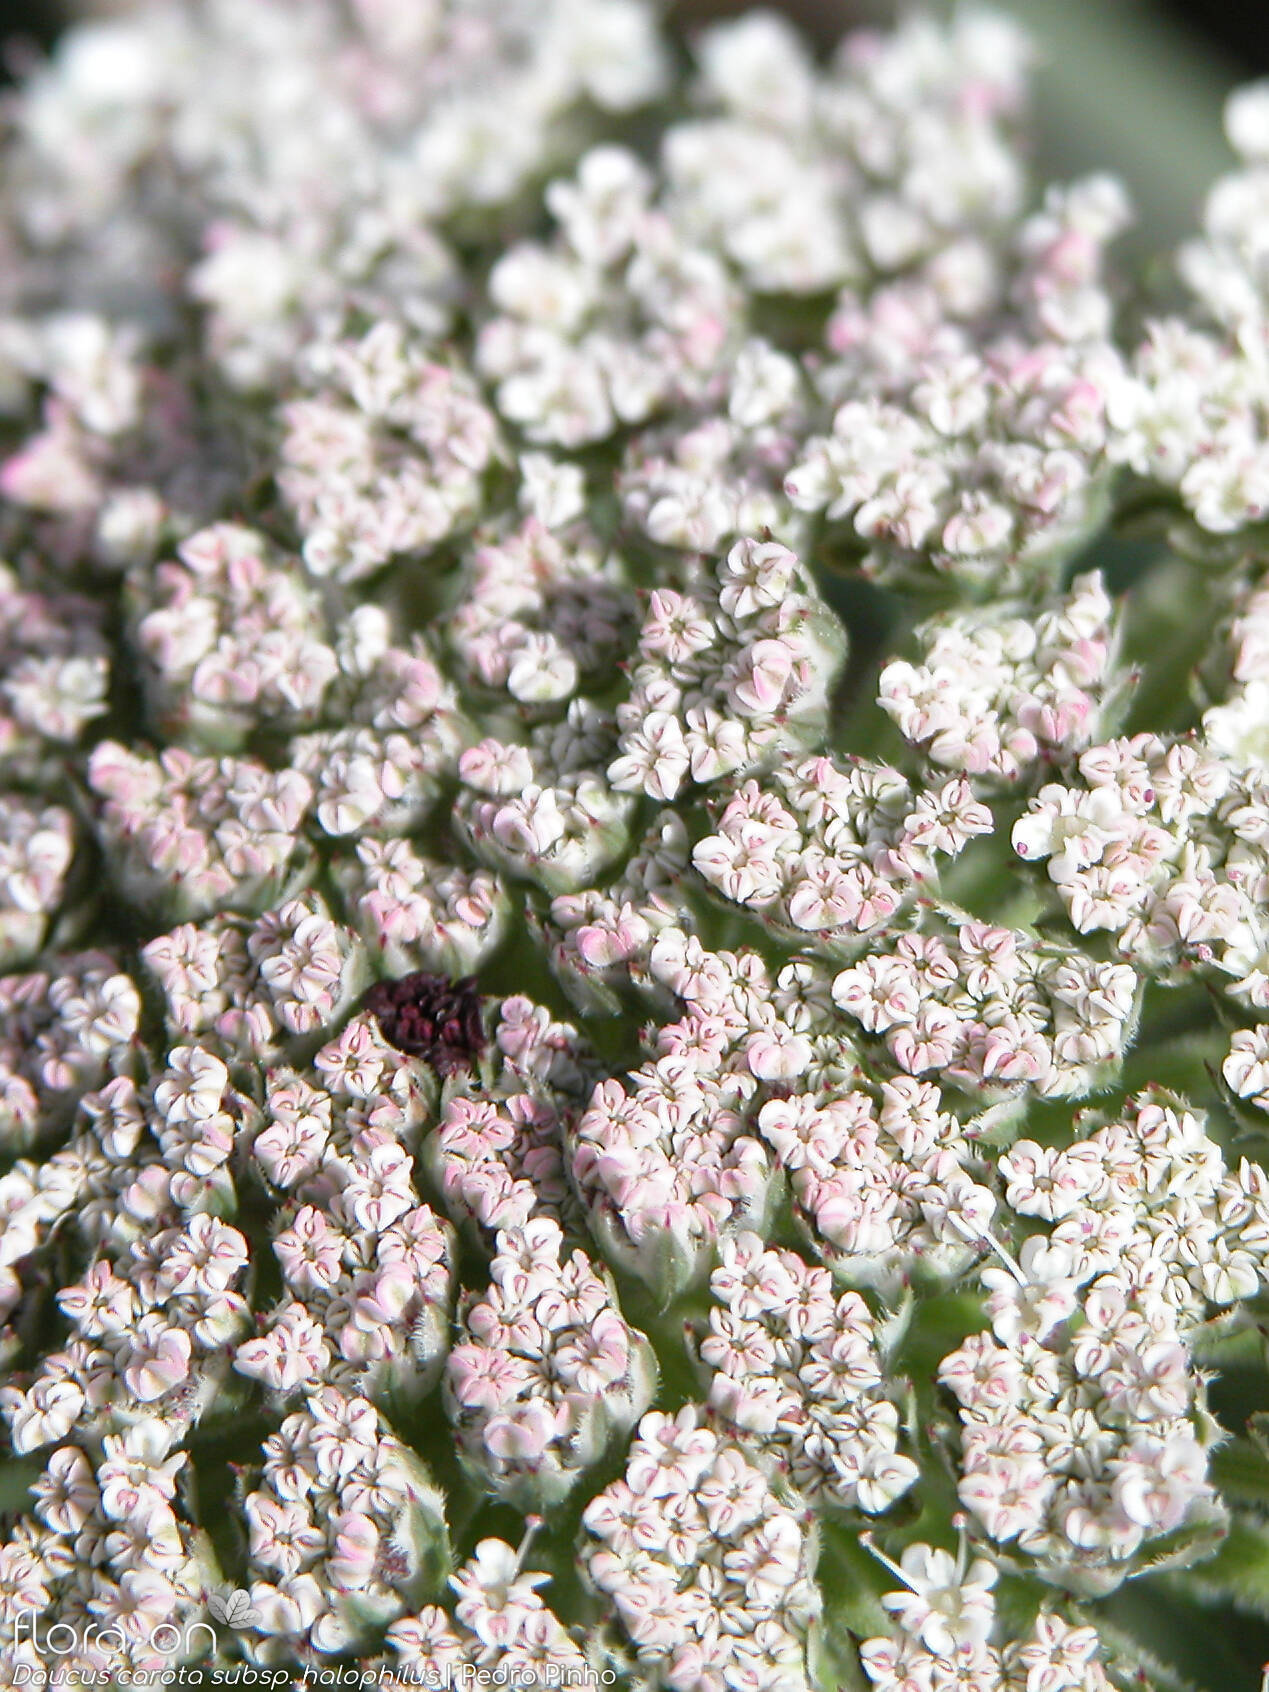 Daucus carota halophilus - Flor (close-up) | Pedro Pinho; CC BY-NC 4.0